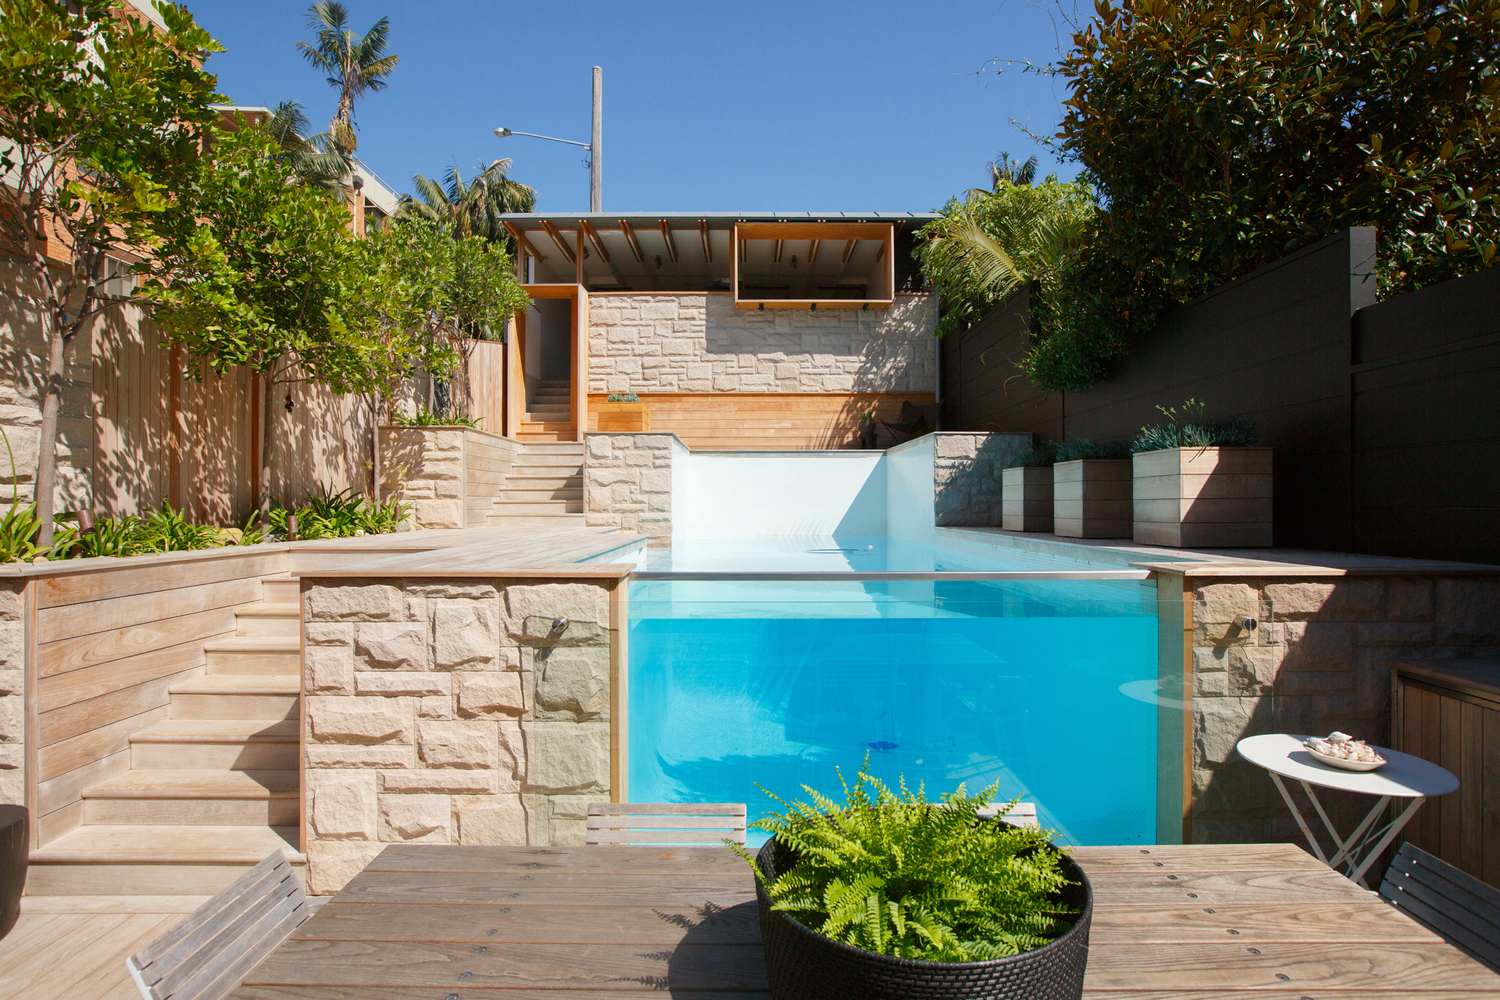 House with Transparent Backyard Swimming Pool